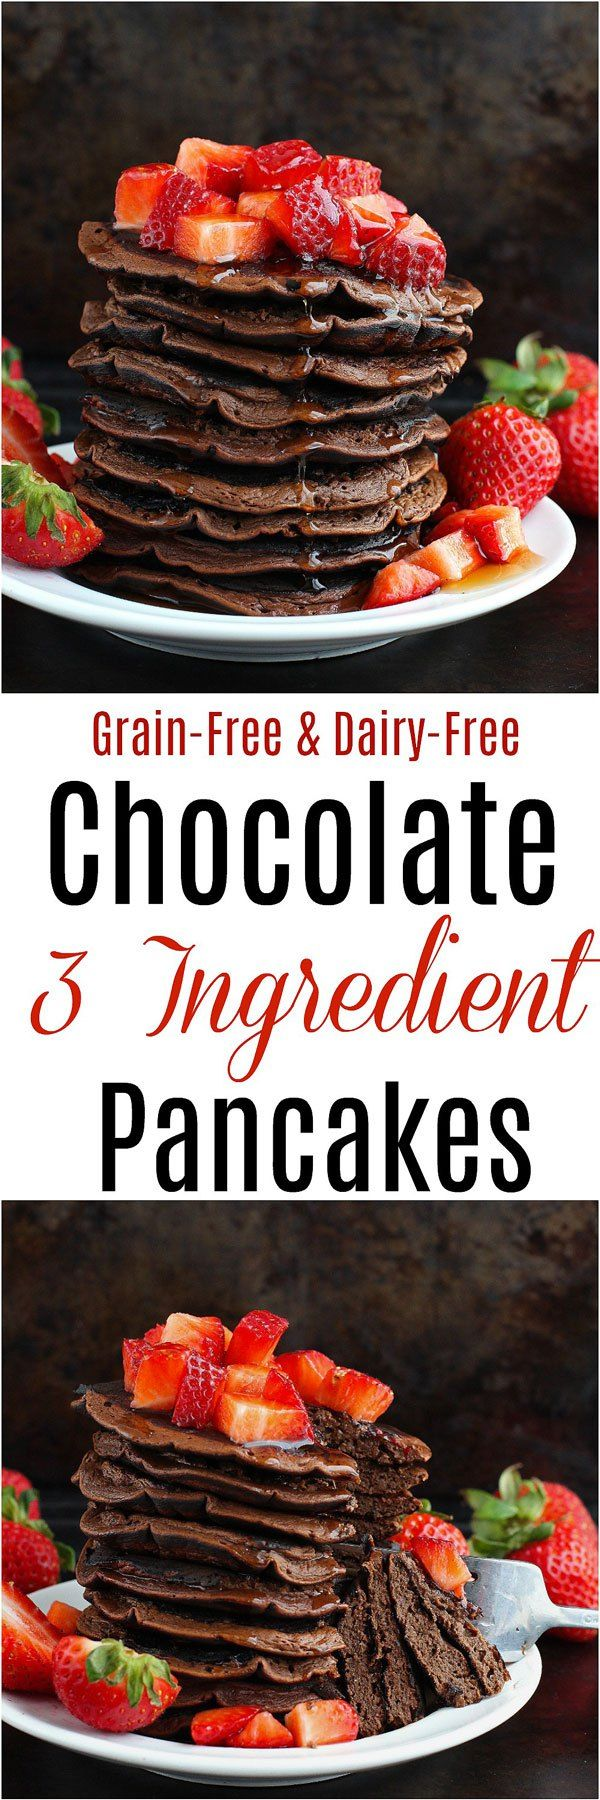 Chocolate 3 Ingredient Pancakes - All you need is three ingredients and a few minutes and you've got yourself a batch of delicious Chocolate 3 Ingredient Pancakes! Gluten-free, grain-free, dairy-free and paleo